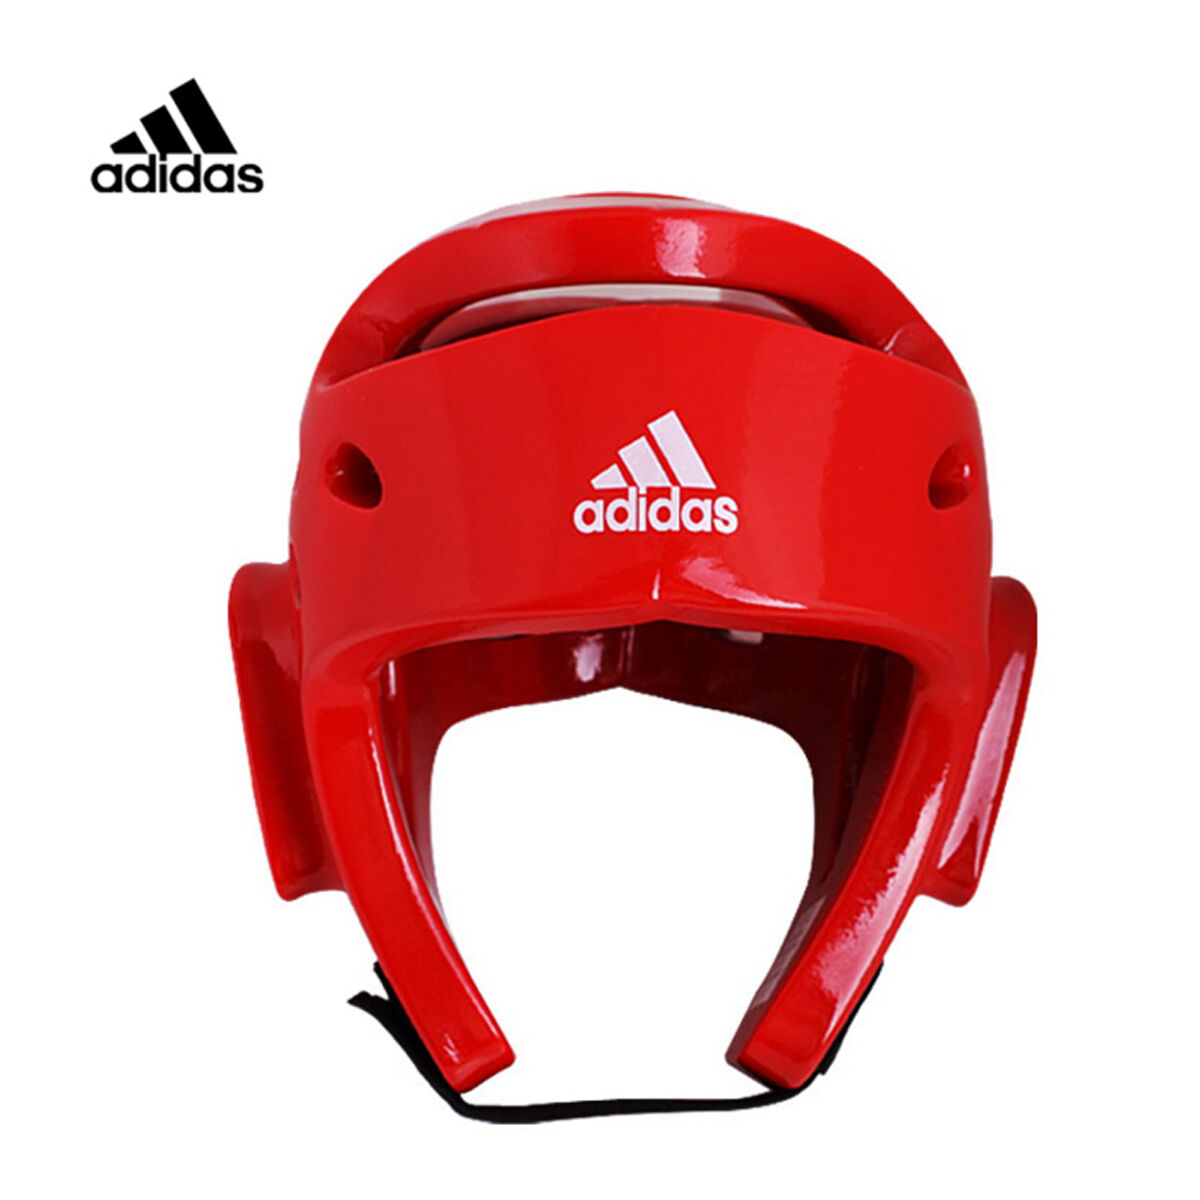 Adidas Official Olympic Games Taekwondo  Sparring Headgear WTA WTF Boxing MMA Red  great selection & quick delivery